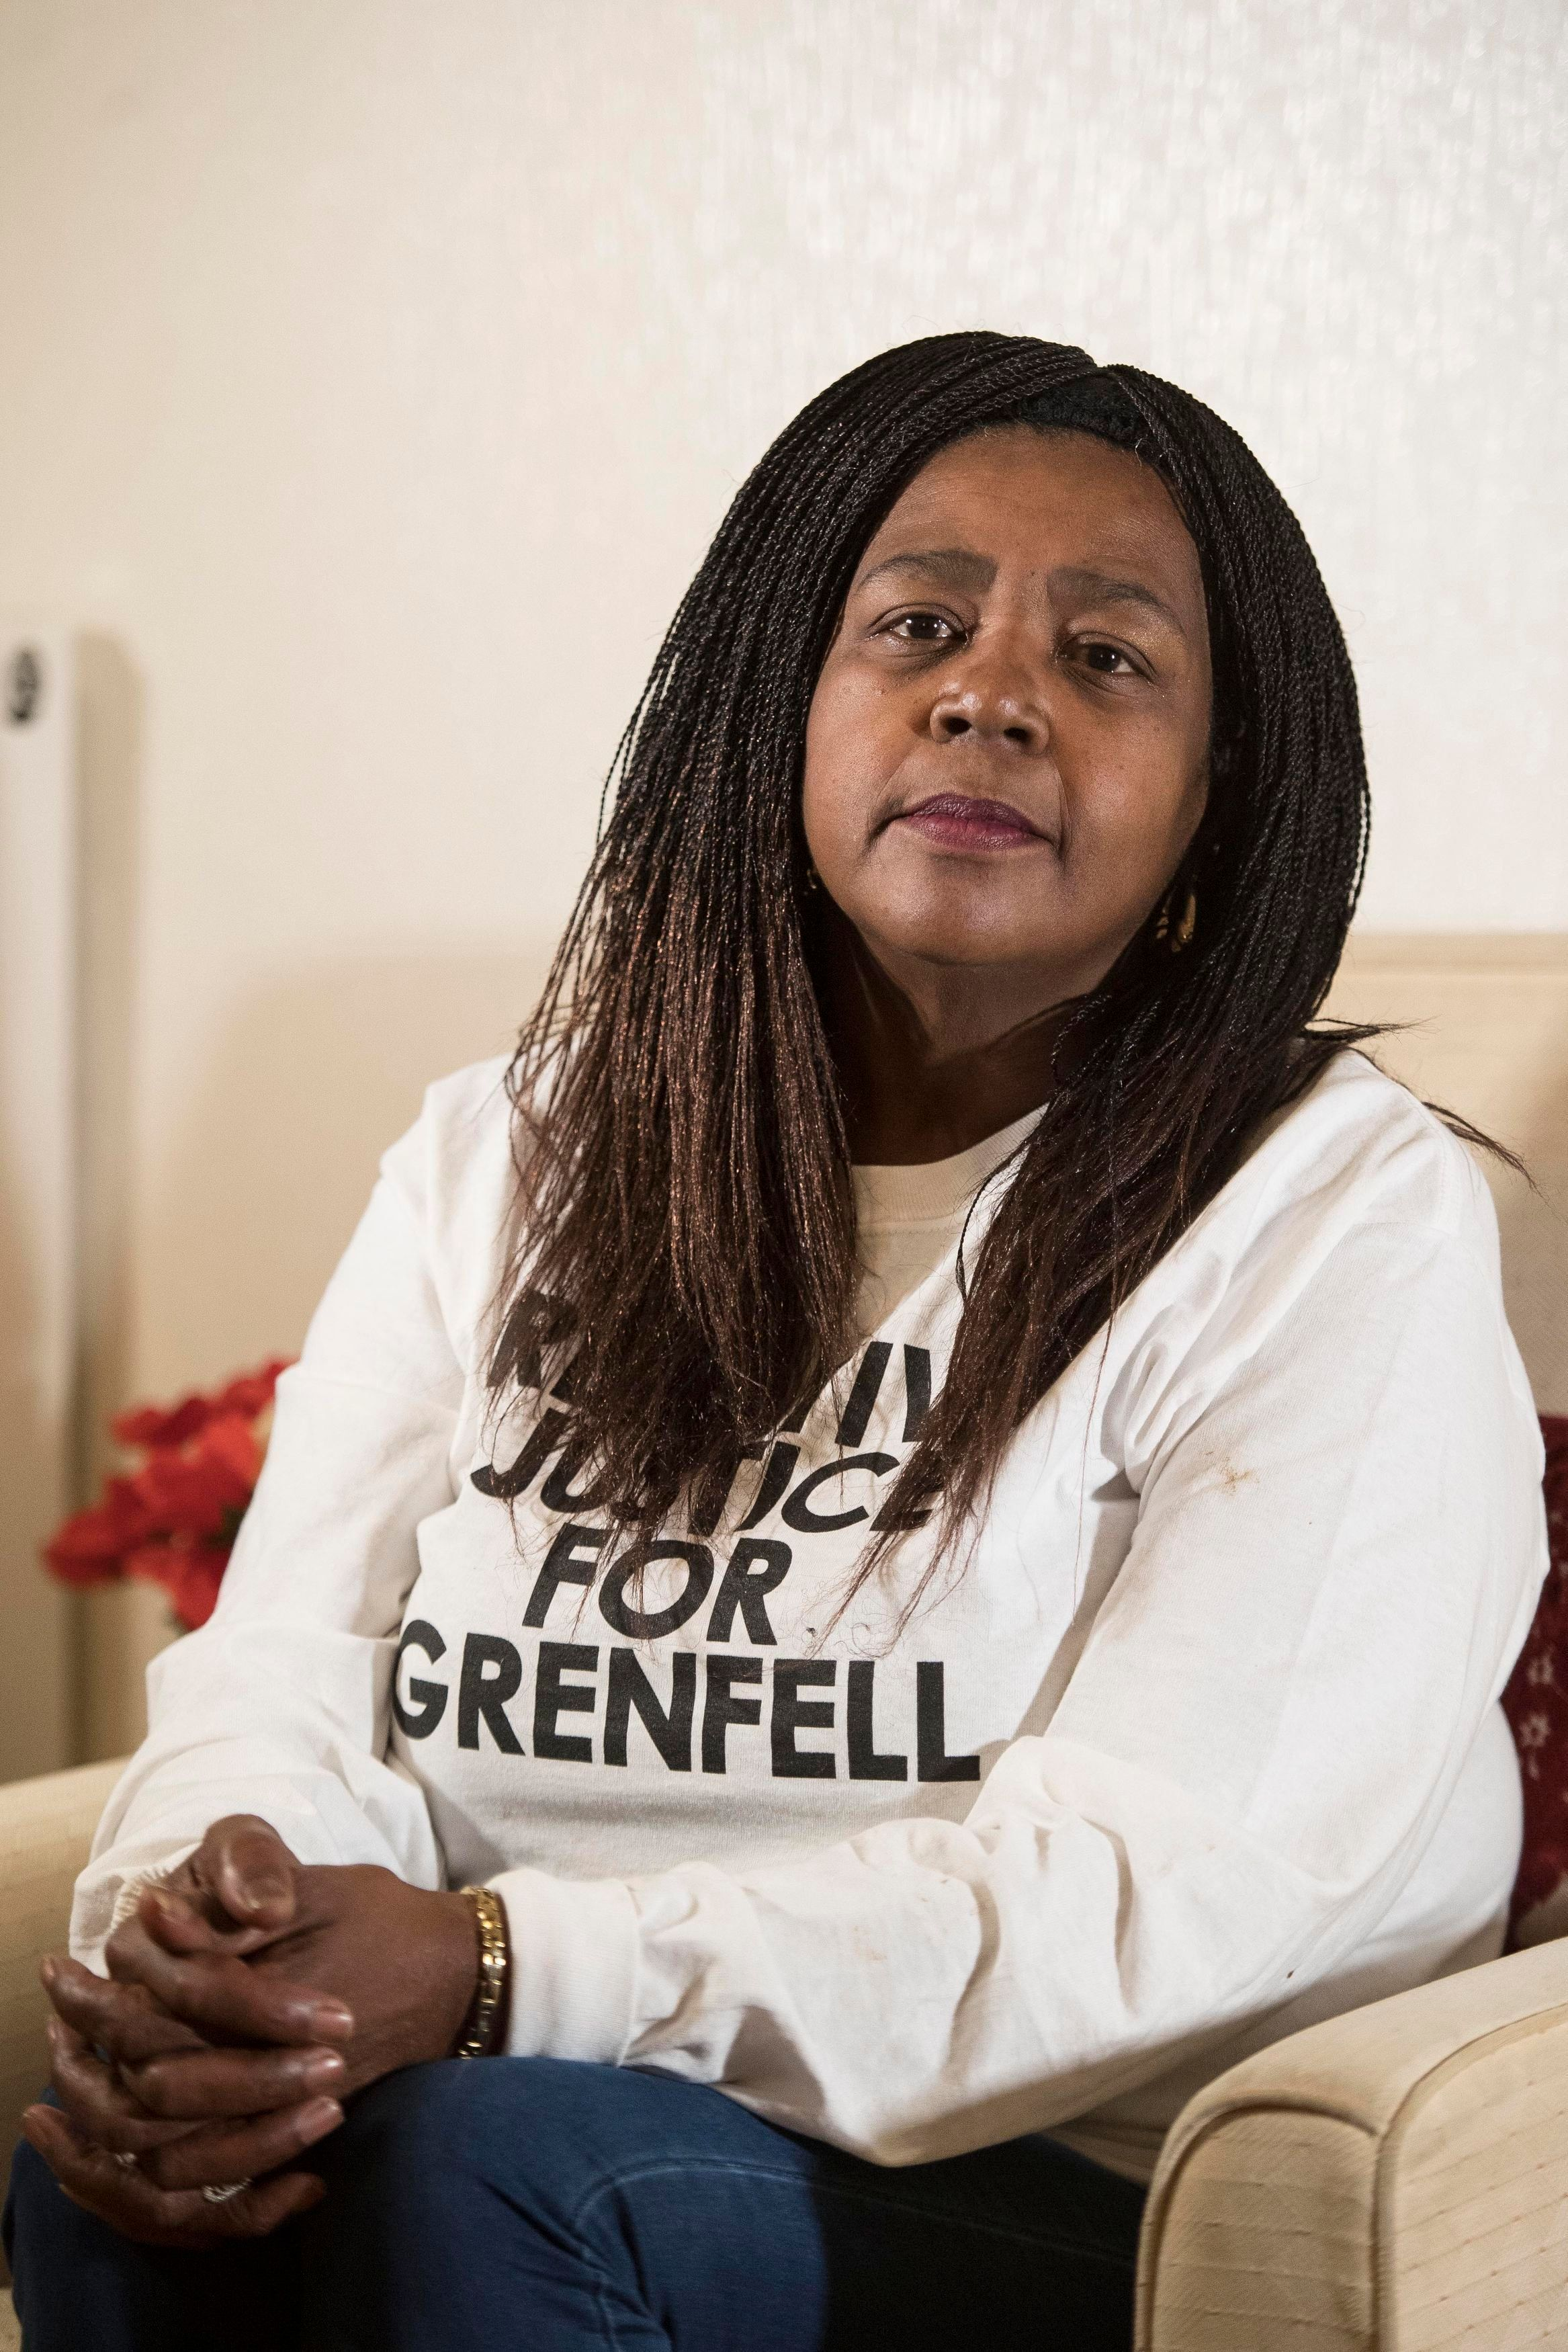 Grenfell Tower Fire Nightmare 'Getting Darker Every Day' For Bereaved